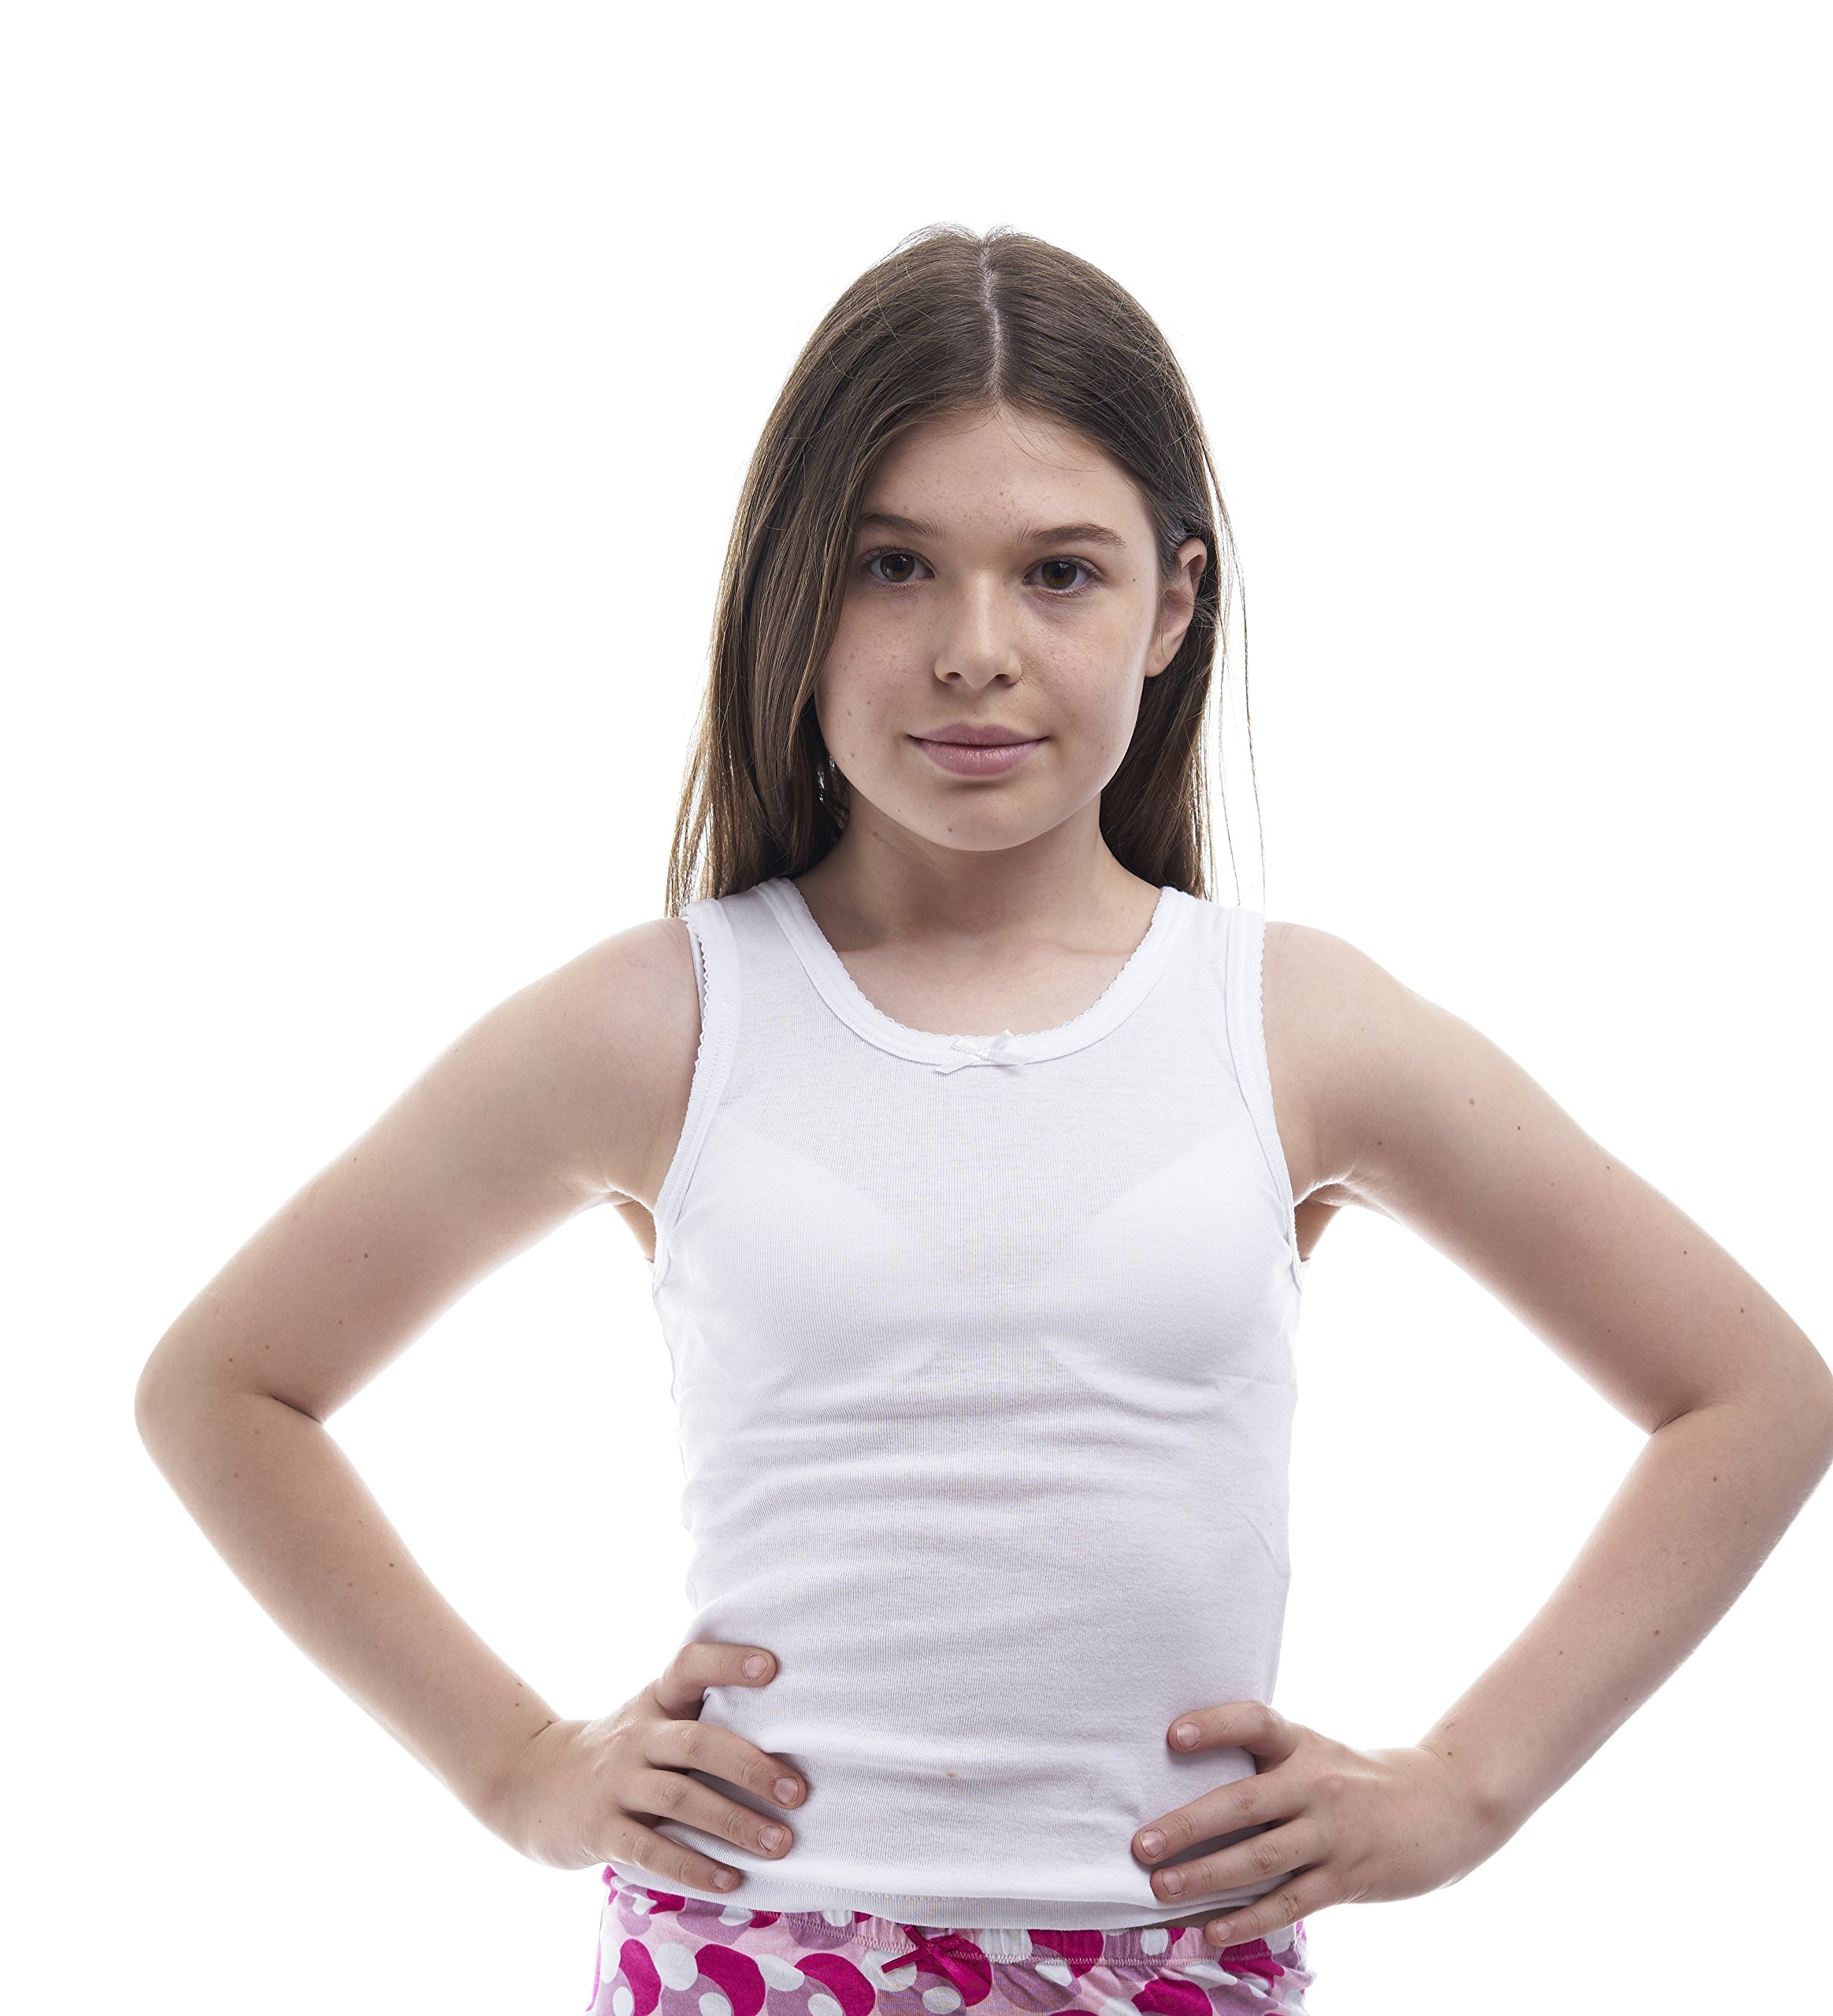 Rossette Girls Cotton White Cami Undershirts - Pack of 2 (14, White)